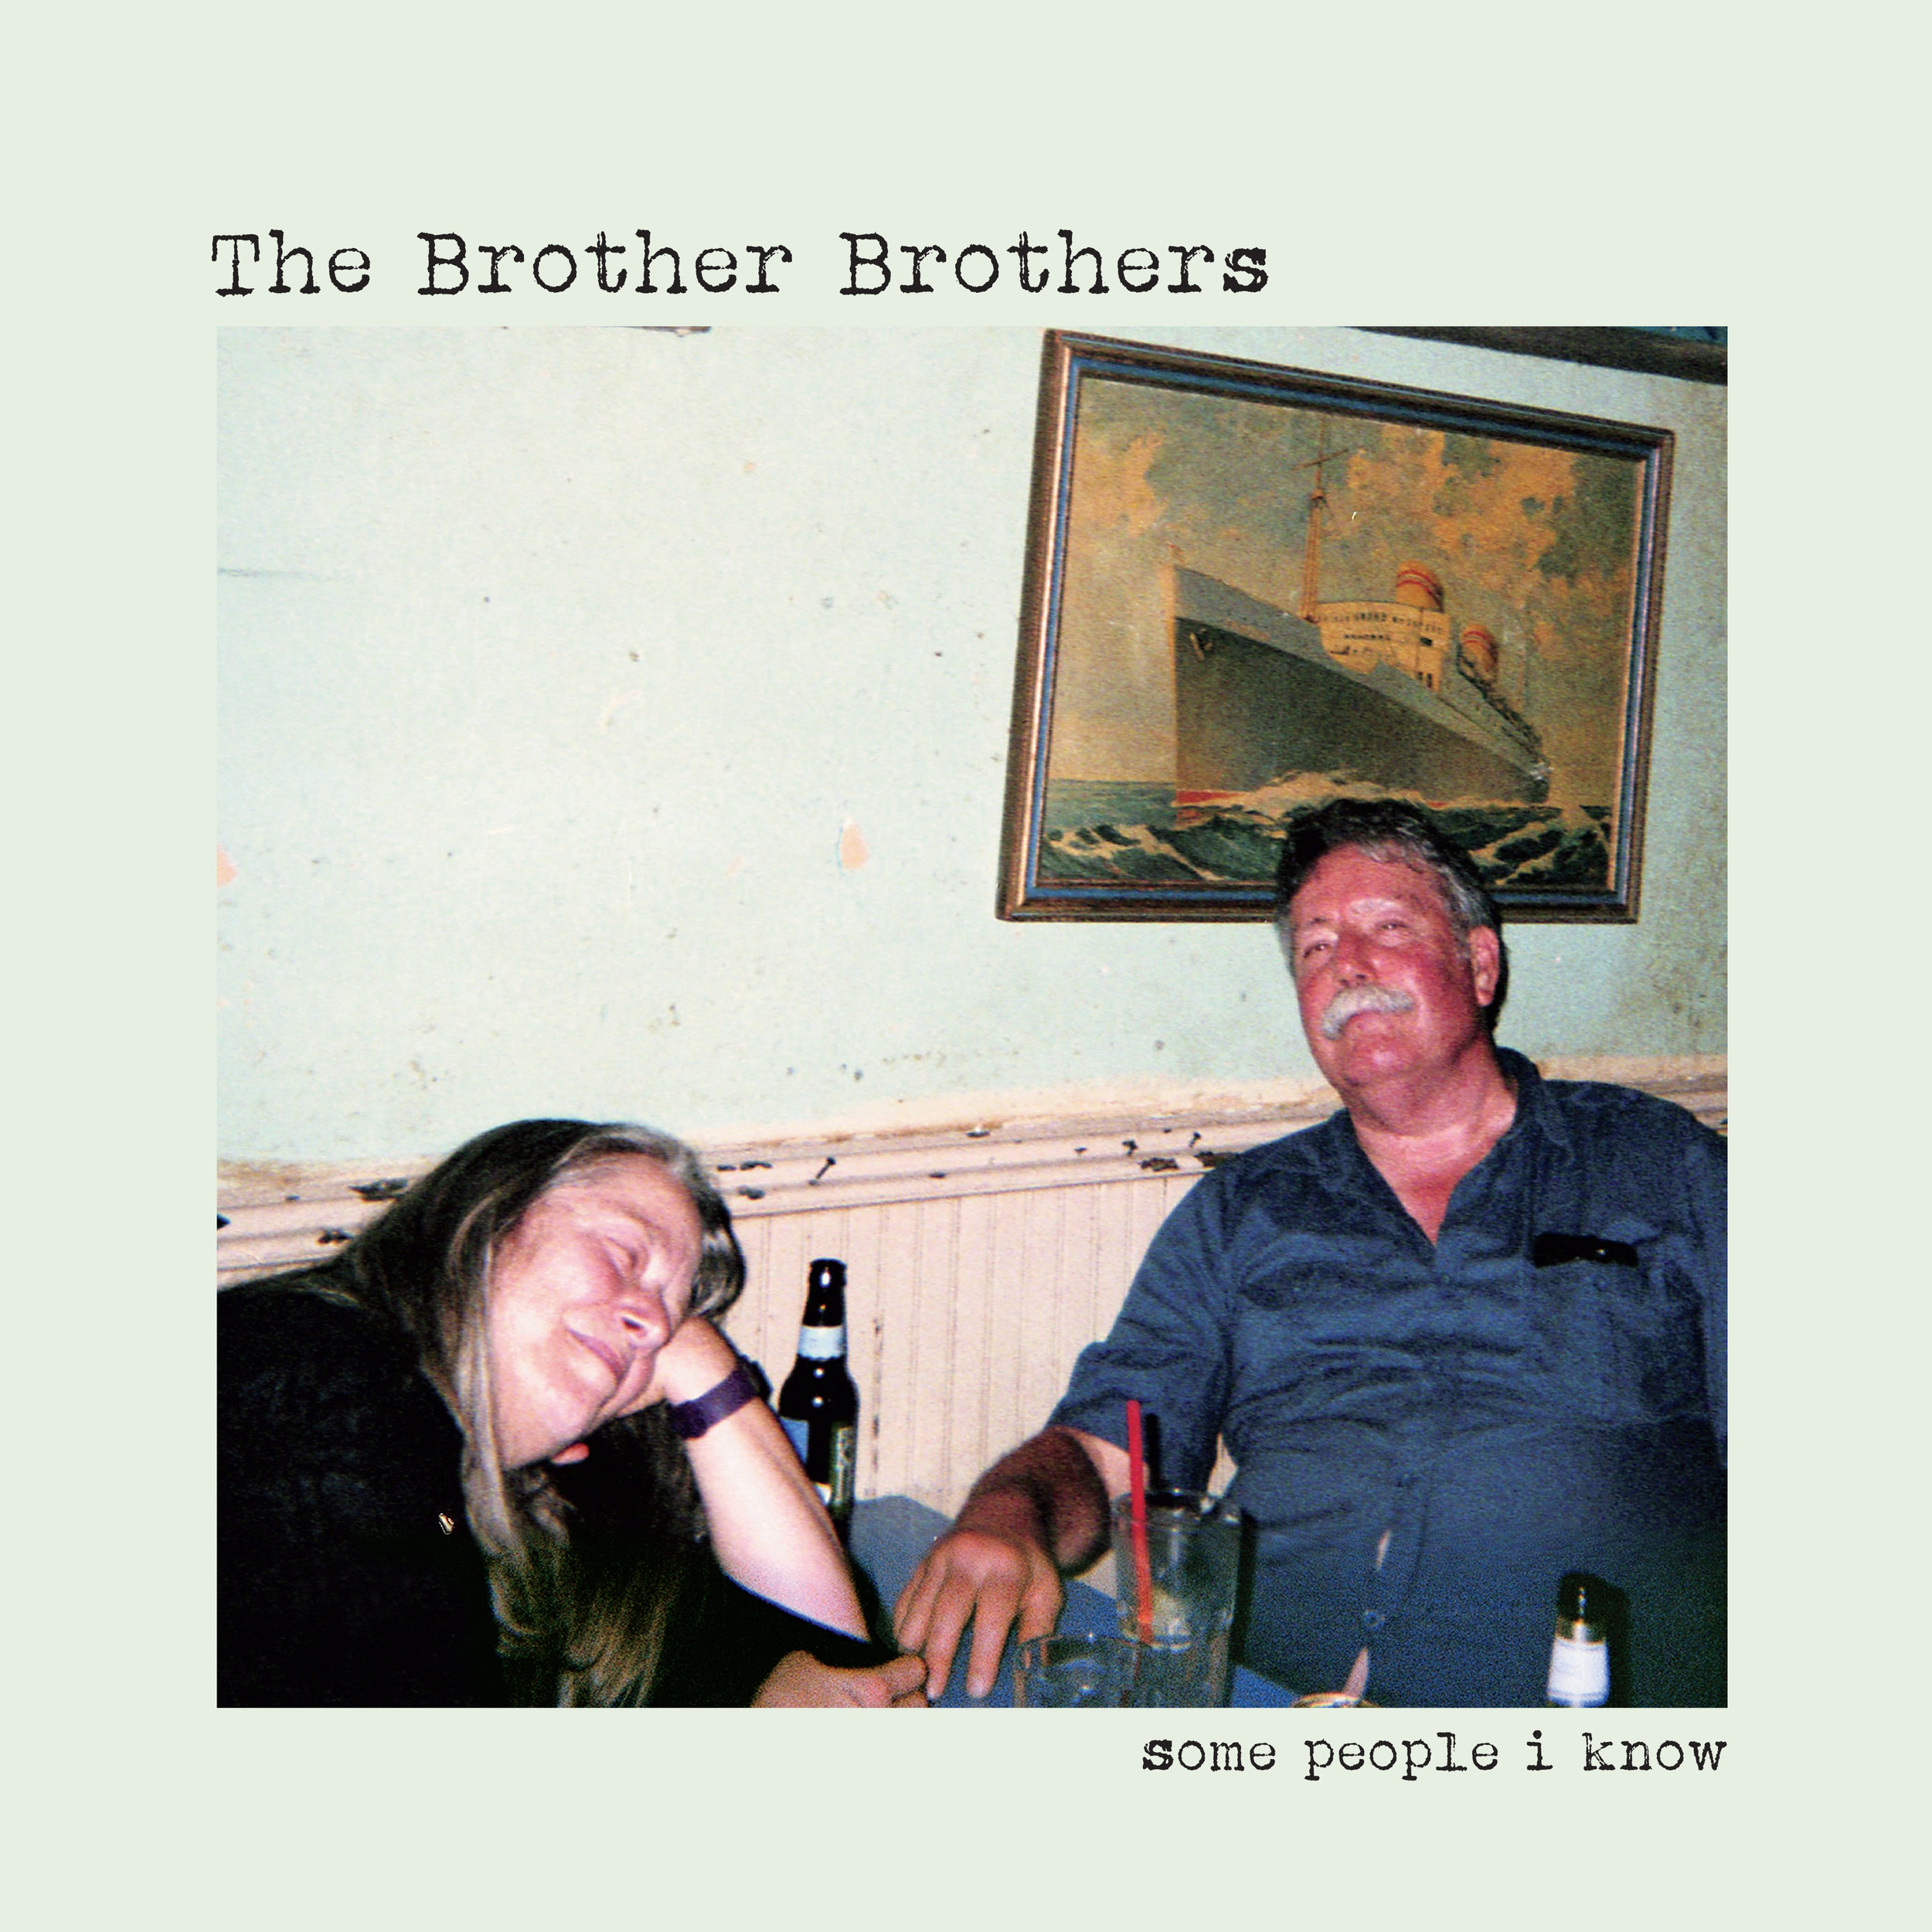 The Brother Brothers SPIK.jpg